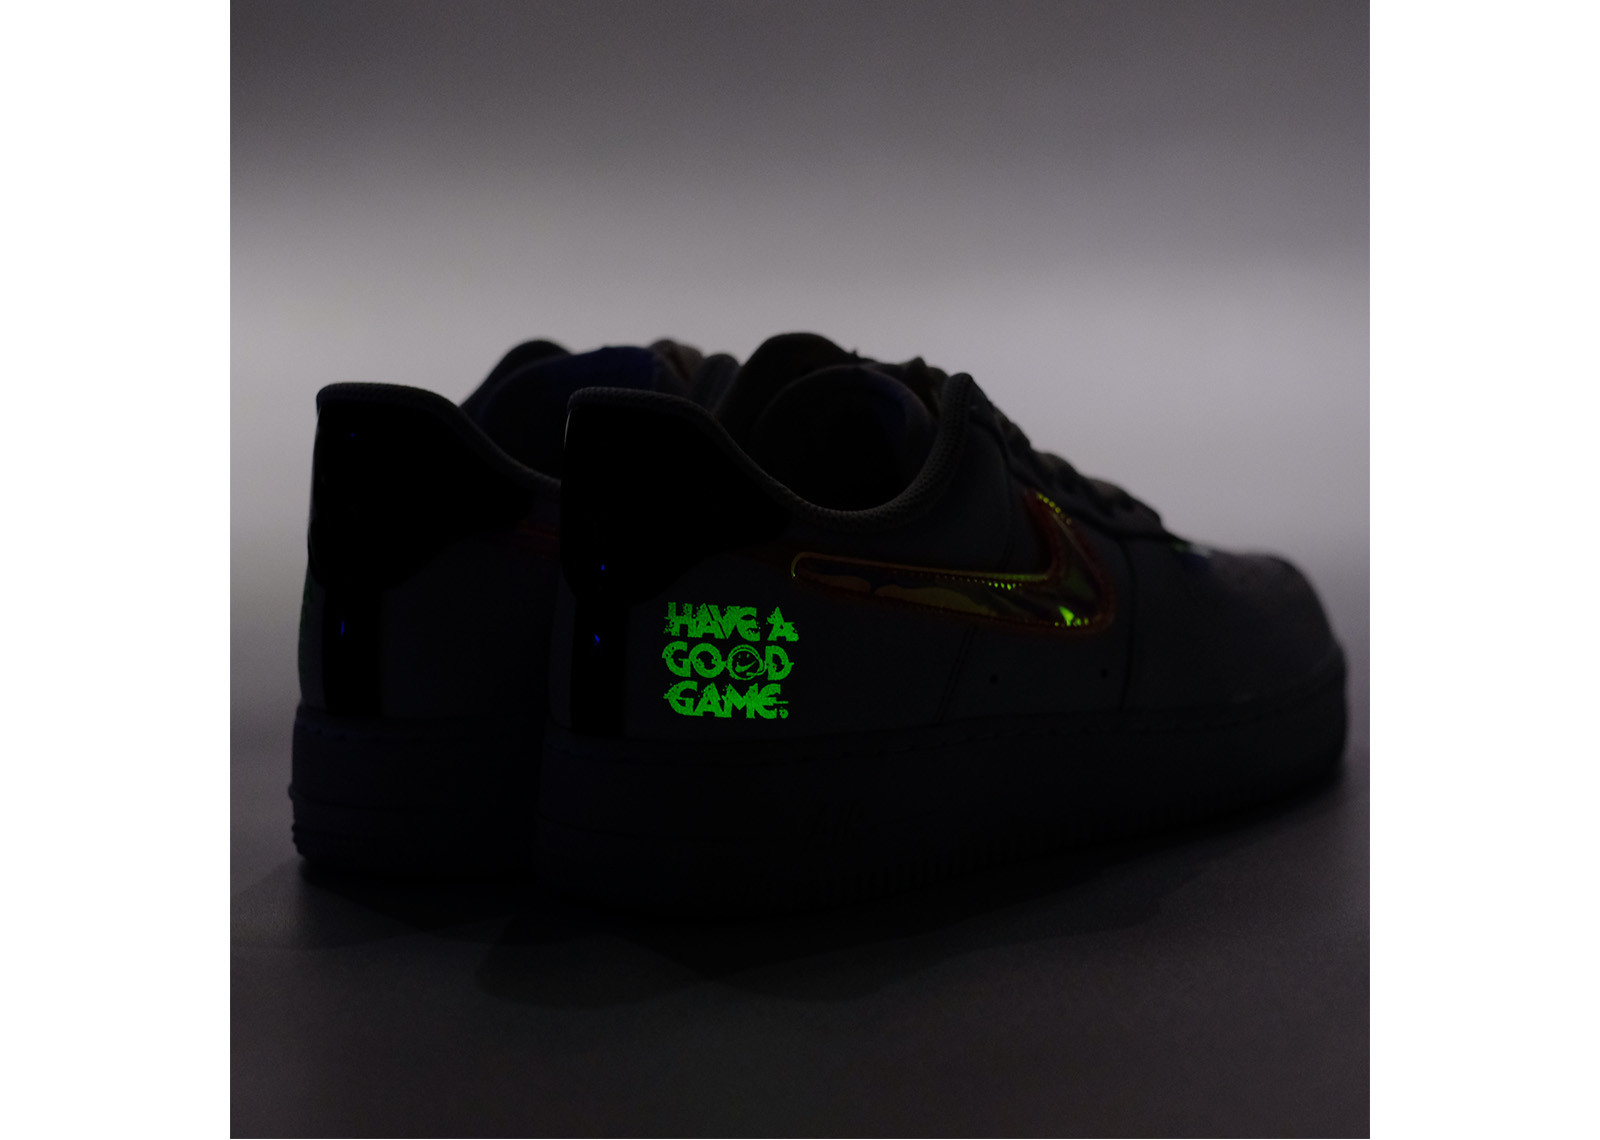 Nike Air Force 1 HAVE A GOOD GAME image 7